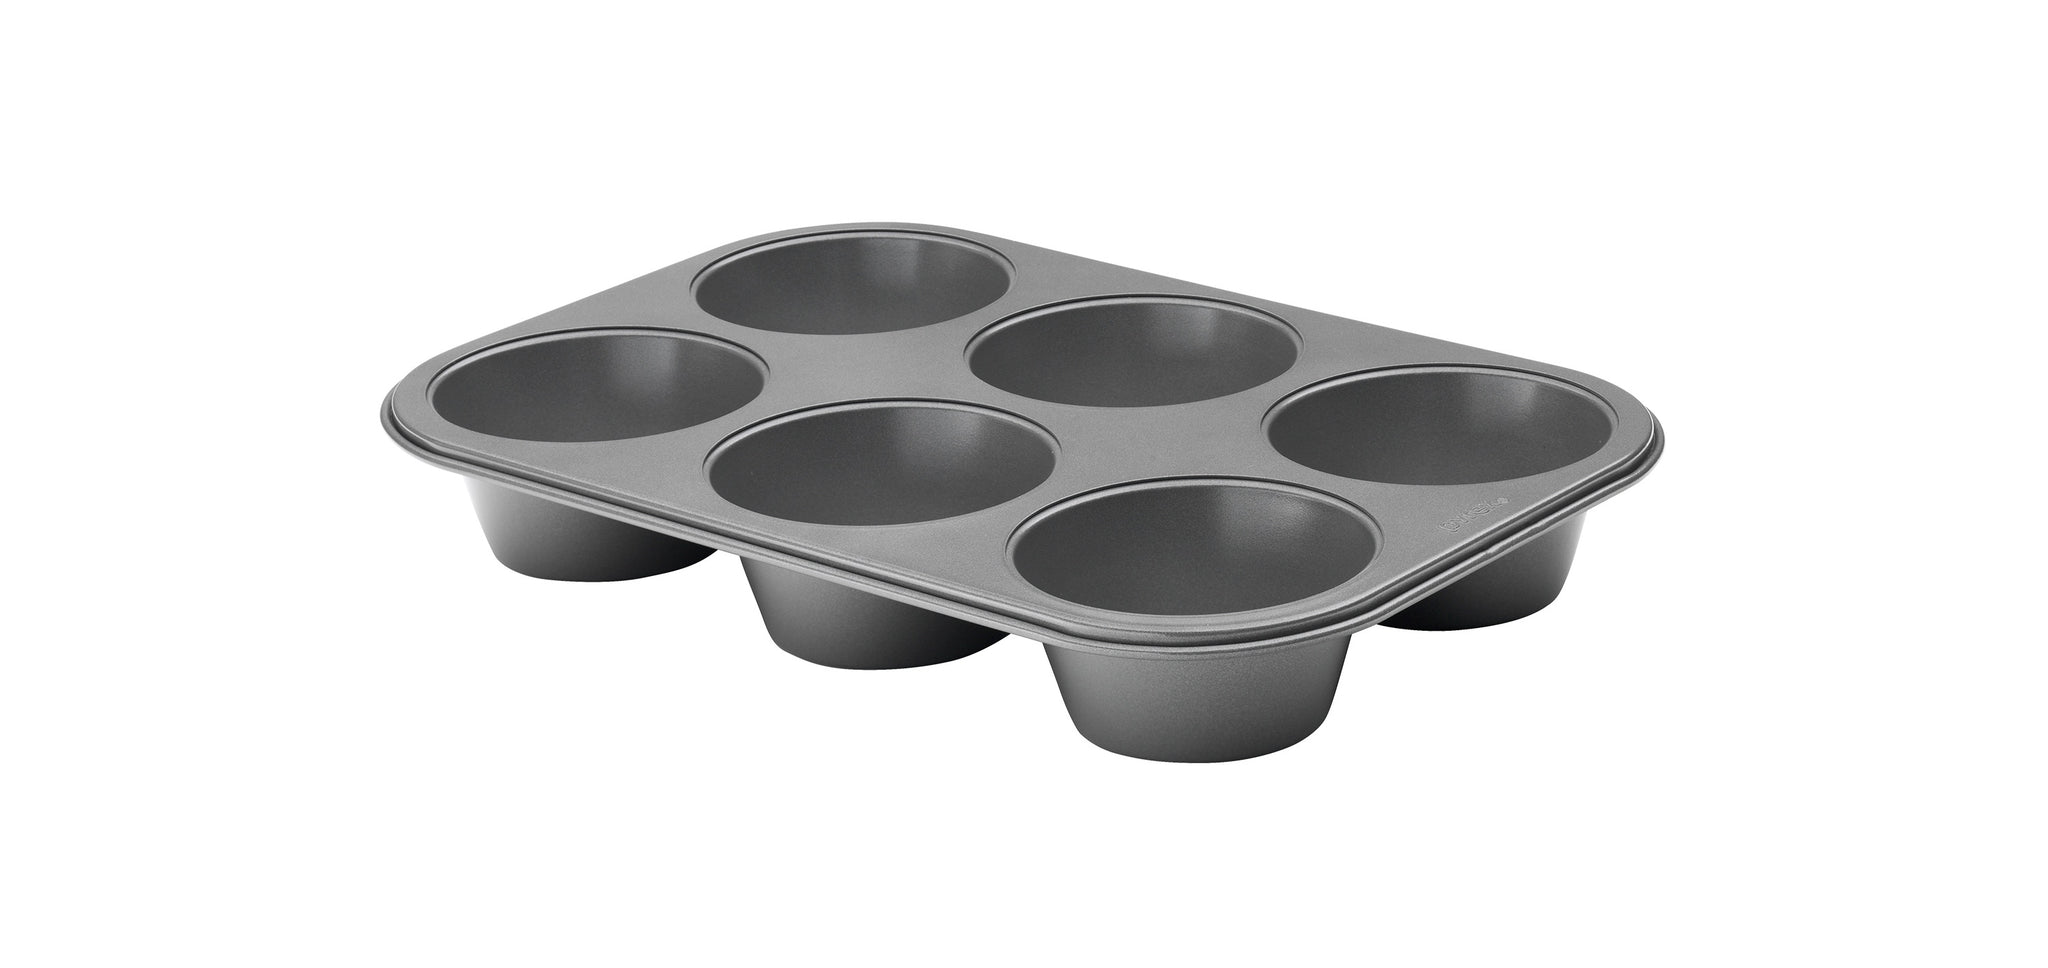 Pyrex Platinum 6 Cup Texas Muffin Pan-1134660